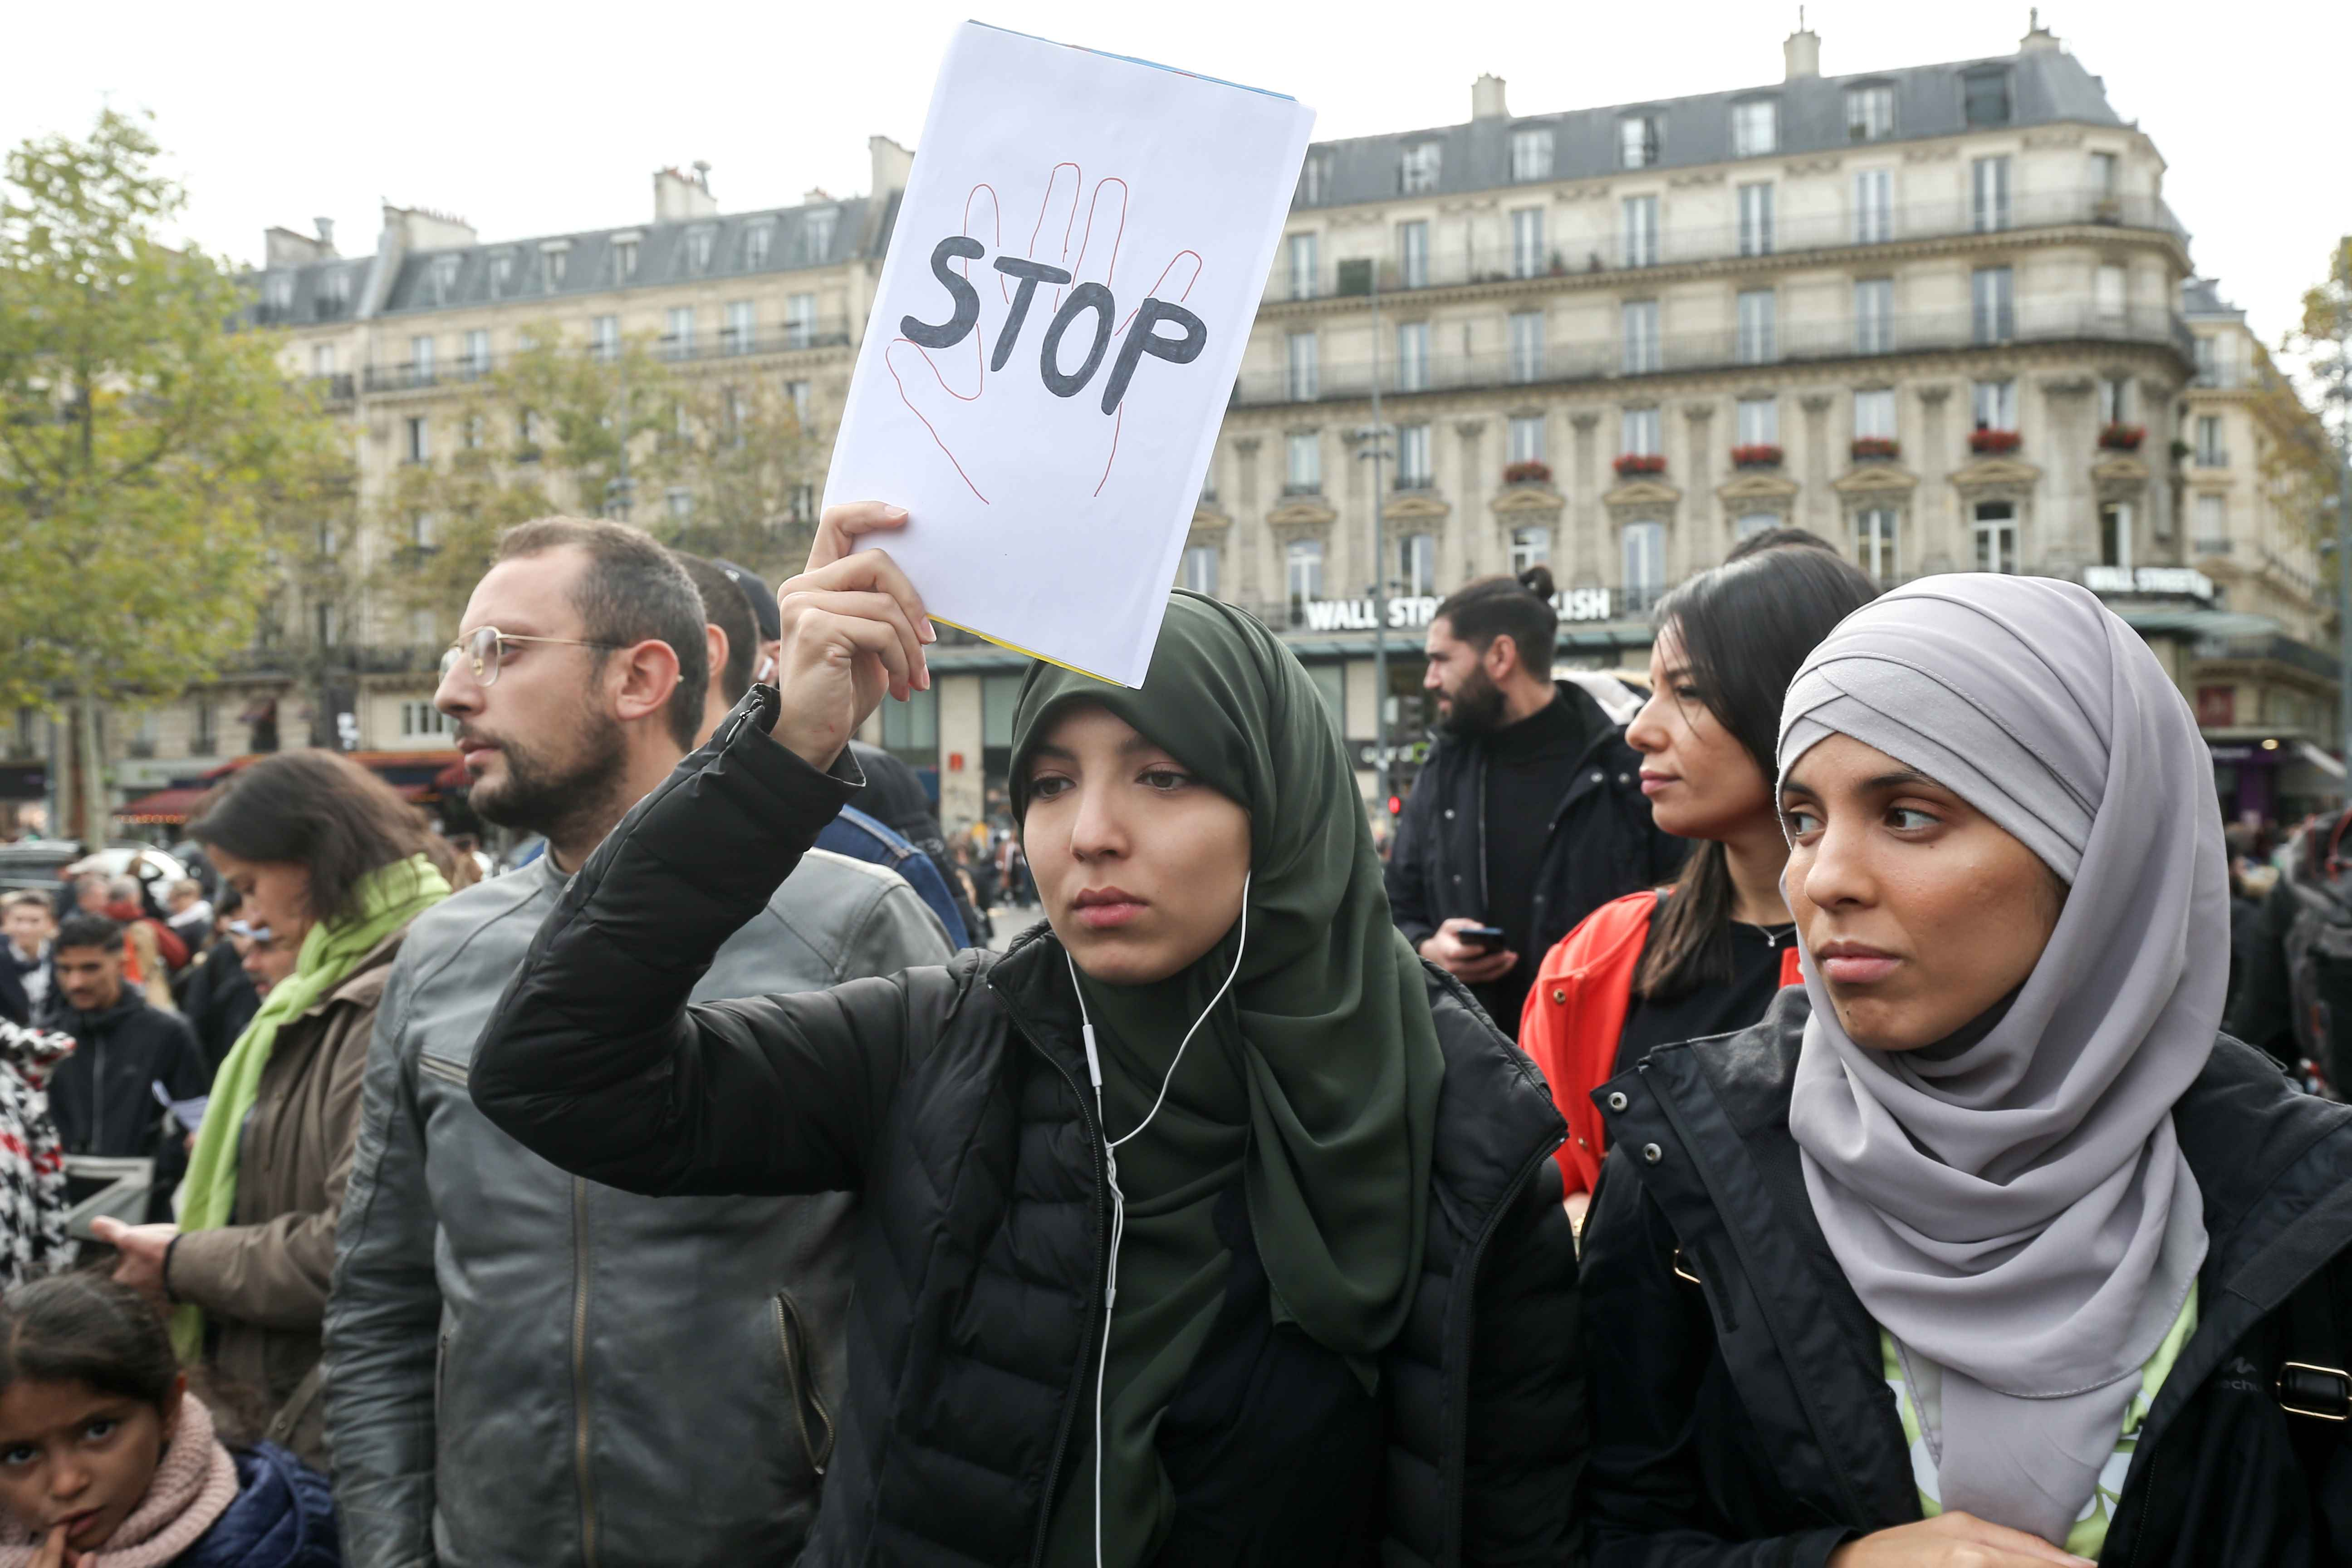 Women demonstrate against Islamophobia on October 19, 2019 on the place de la Republique in Paris. A new row over secularism and the wearing of the Islamic hijab in public buildings has erupted in France after a far-right politician asked a woman accompany